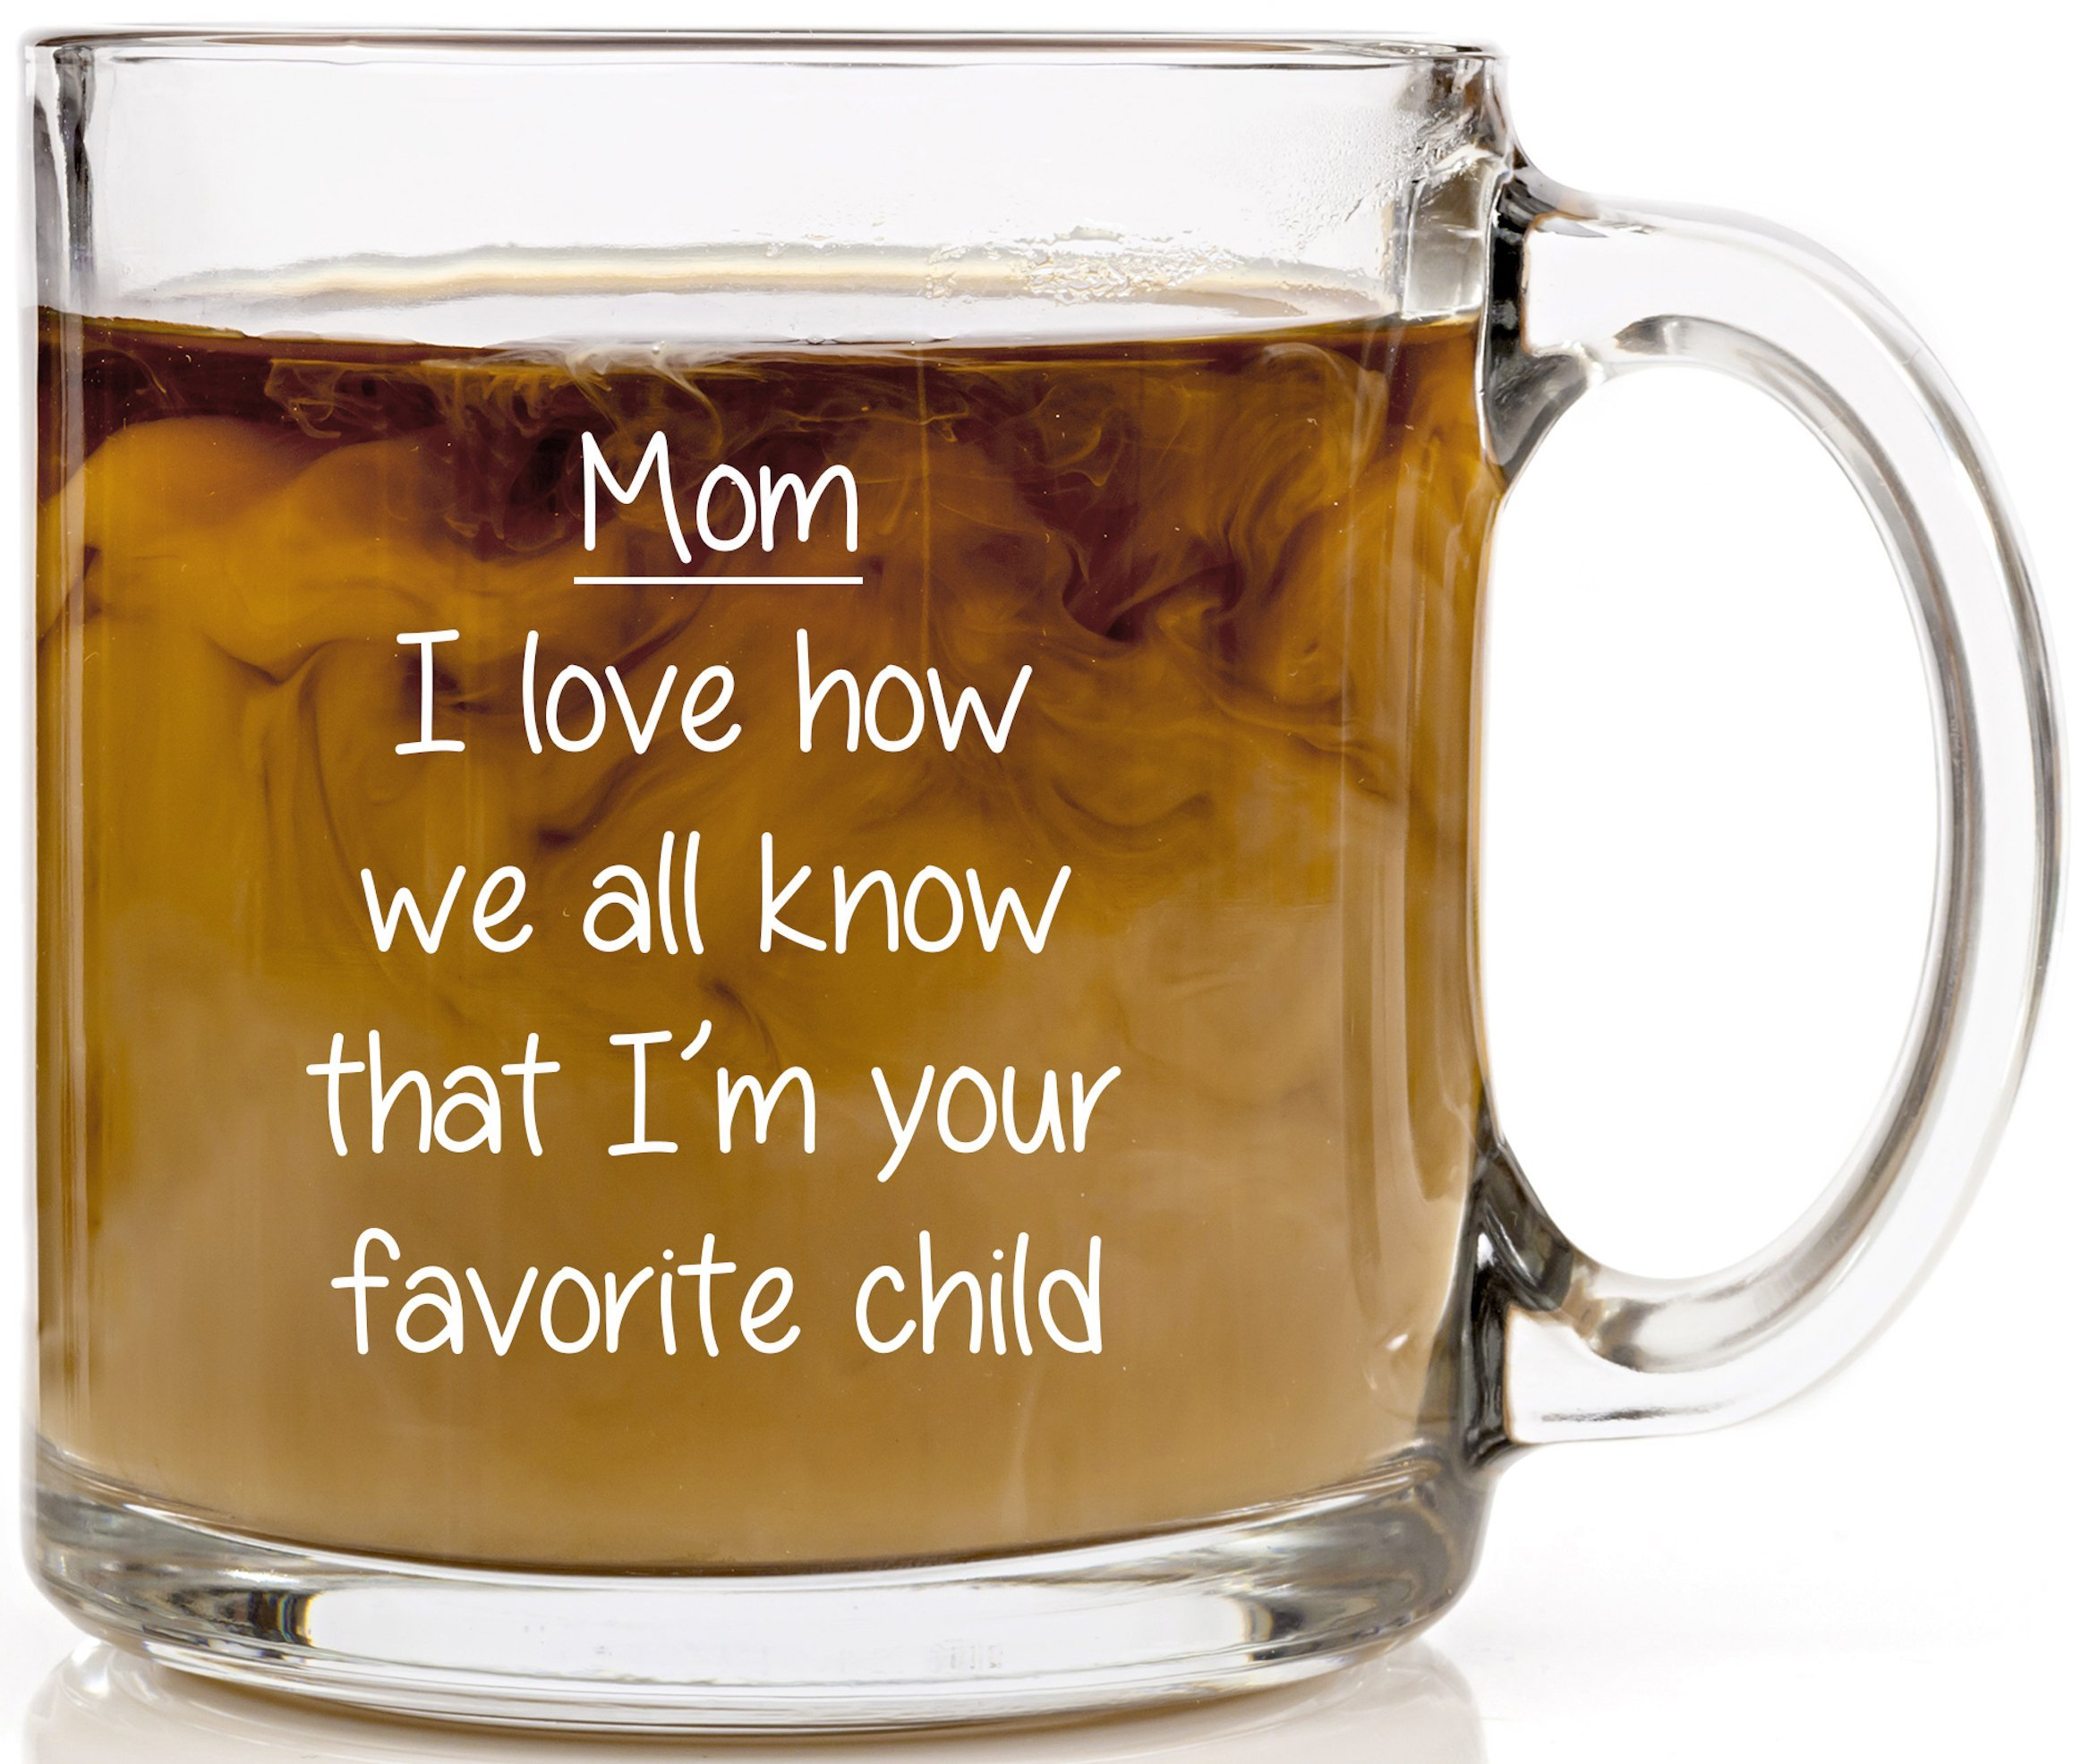 Mom, I Love How We All Know That I'm Your Favorite Child Personalized Coffee Mugs for Mother's Day and Birthday Gift, Funny Mugs for Women, Novelty Coffee Mug, Mom Mug, Mom Coffee Cup, Funny Mug